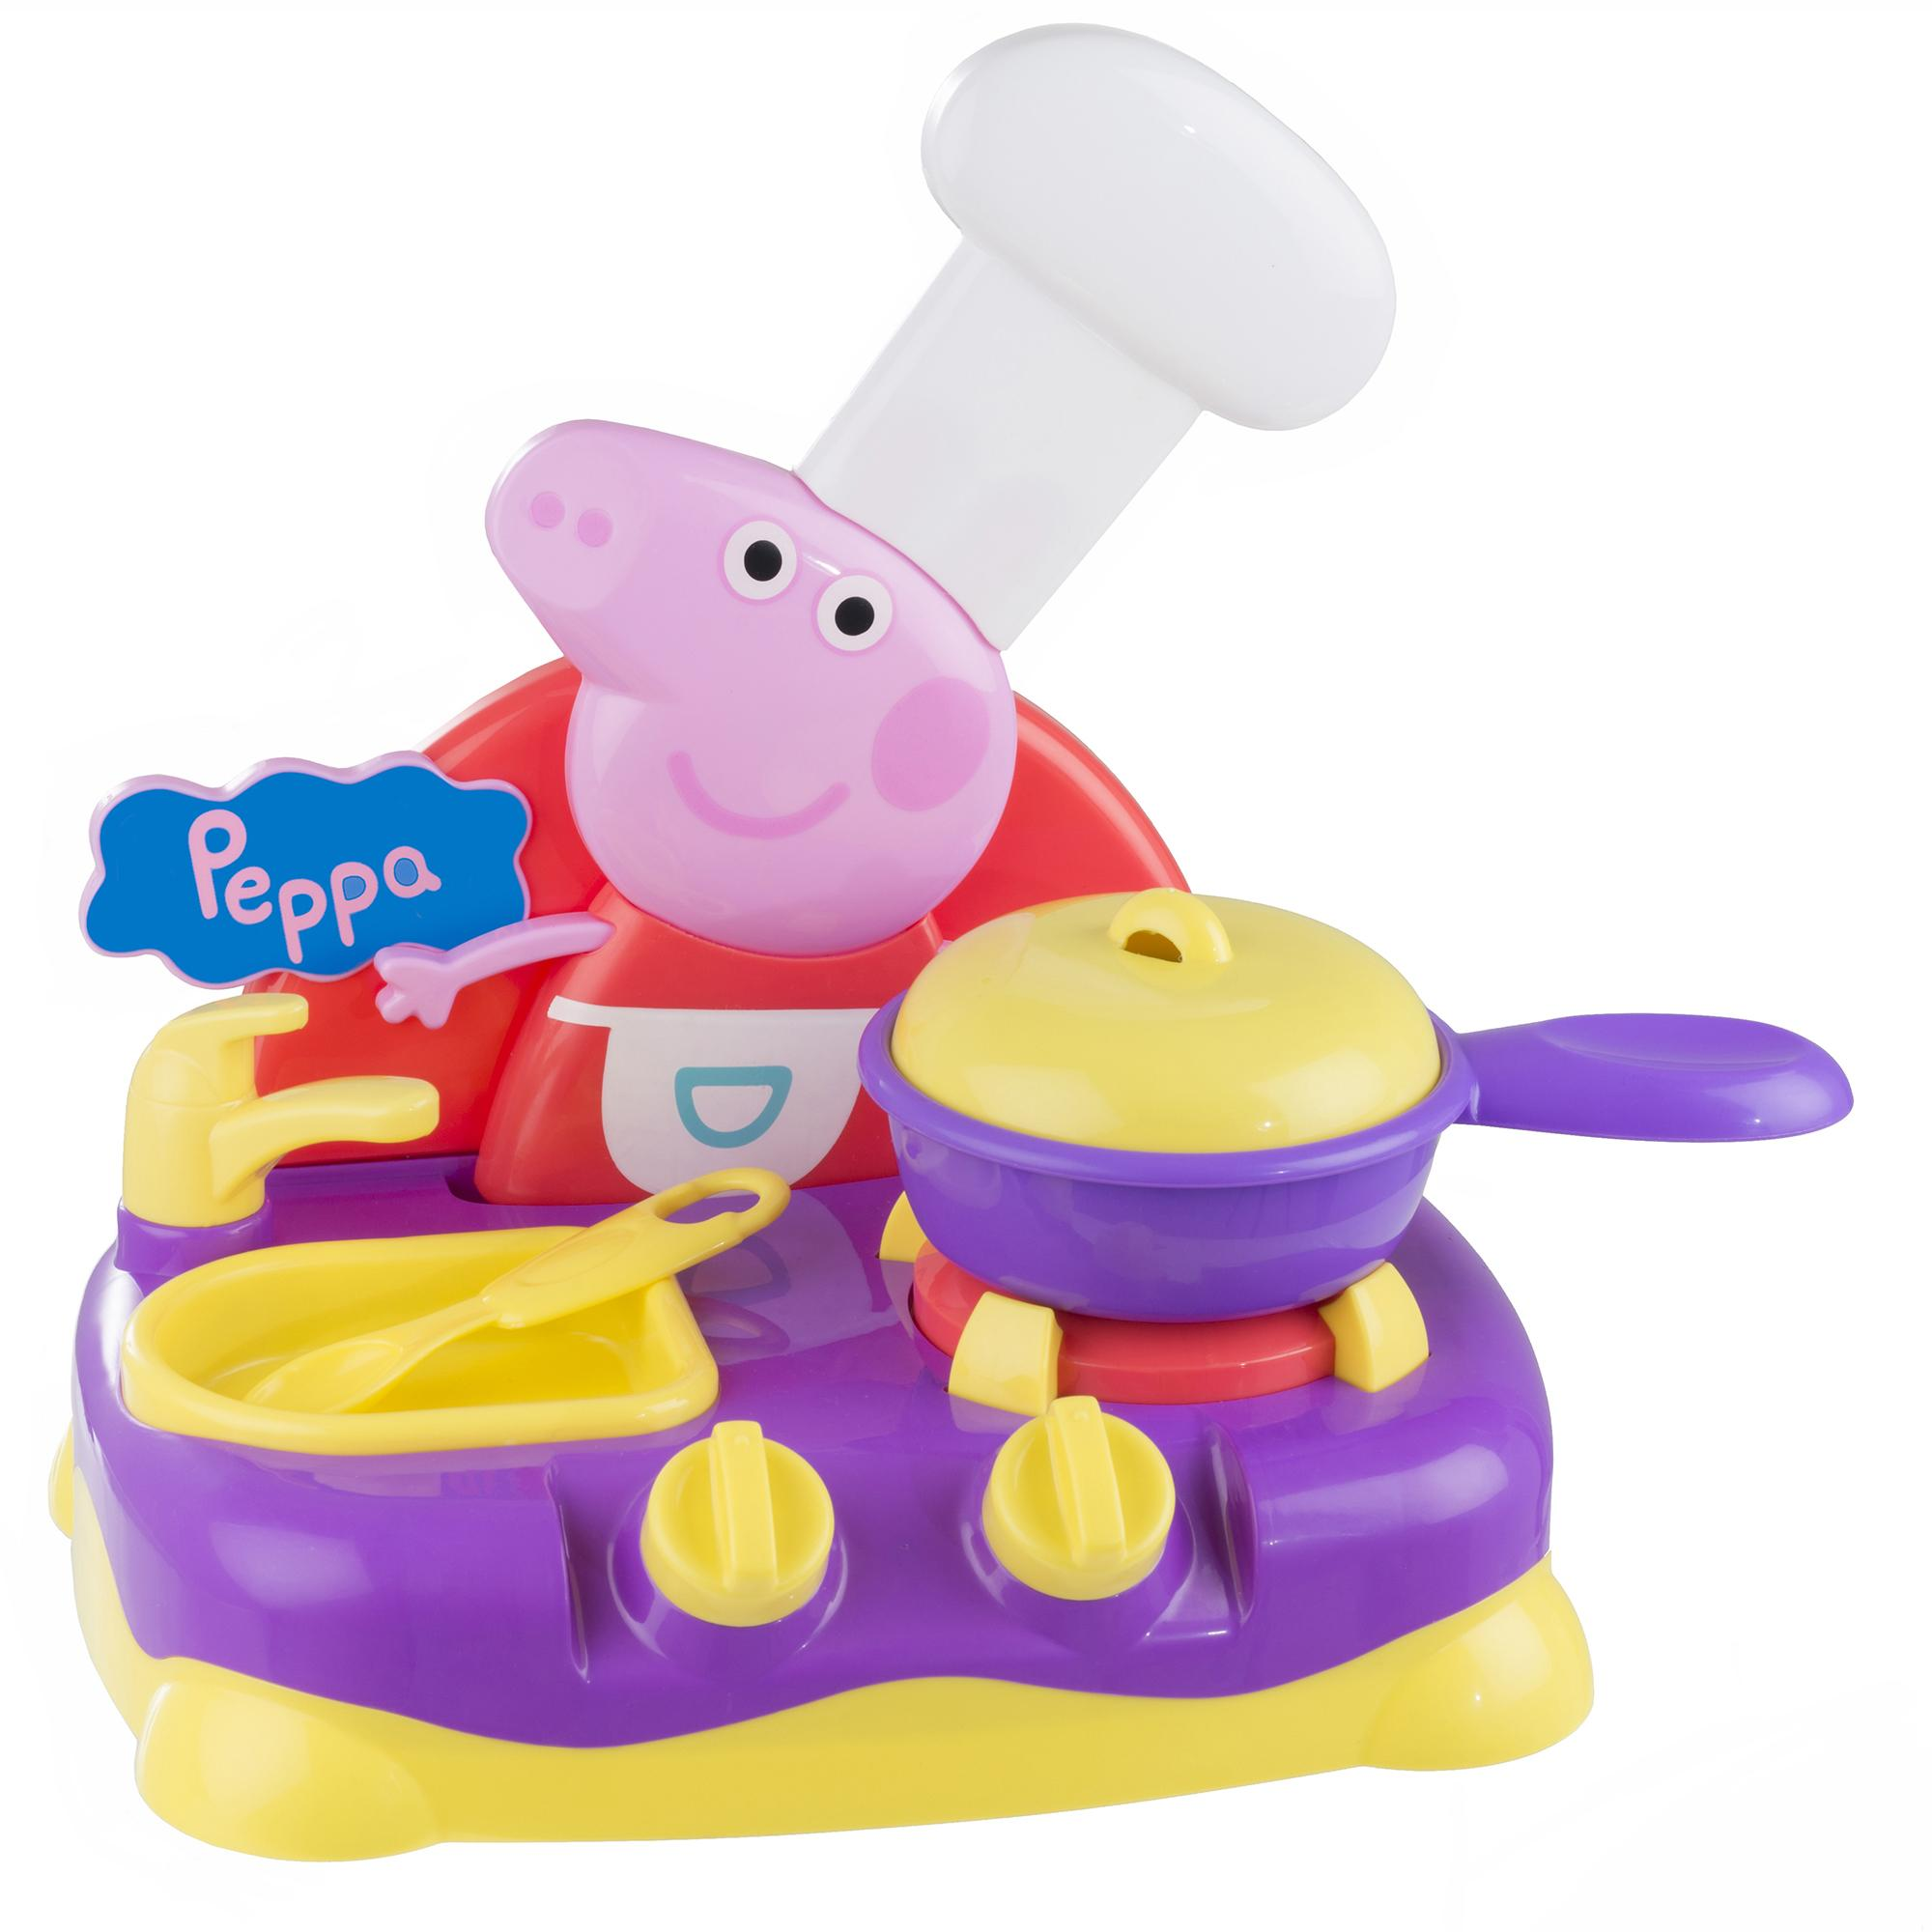 0539: Peppa Pig Tabletop Kitchen